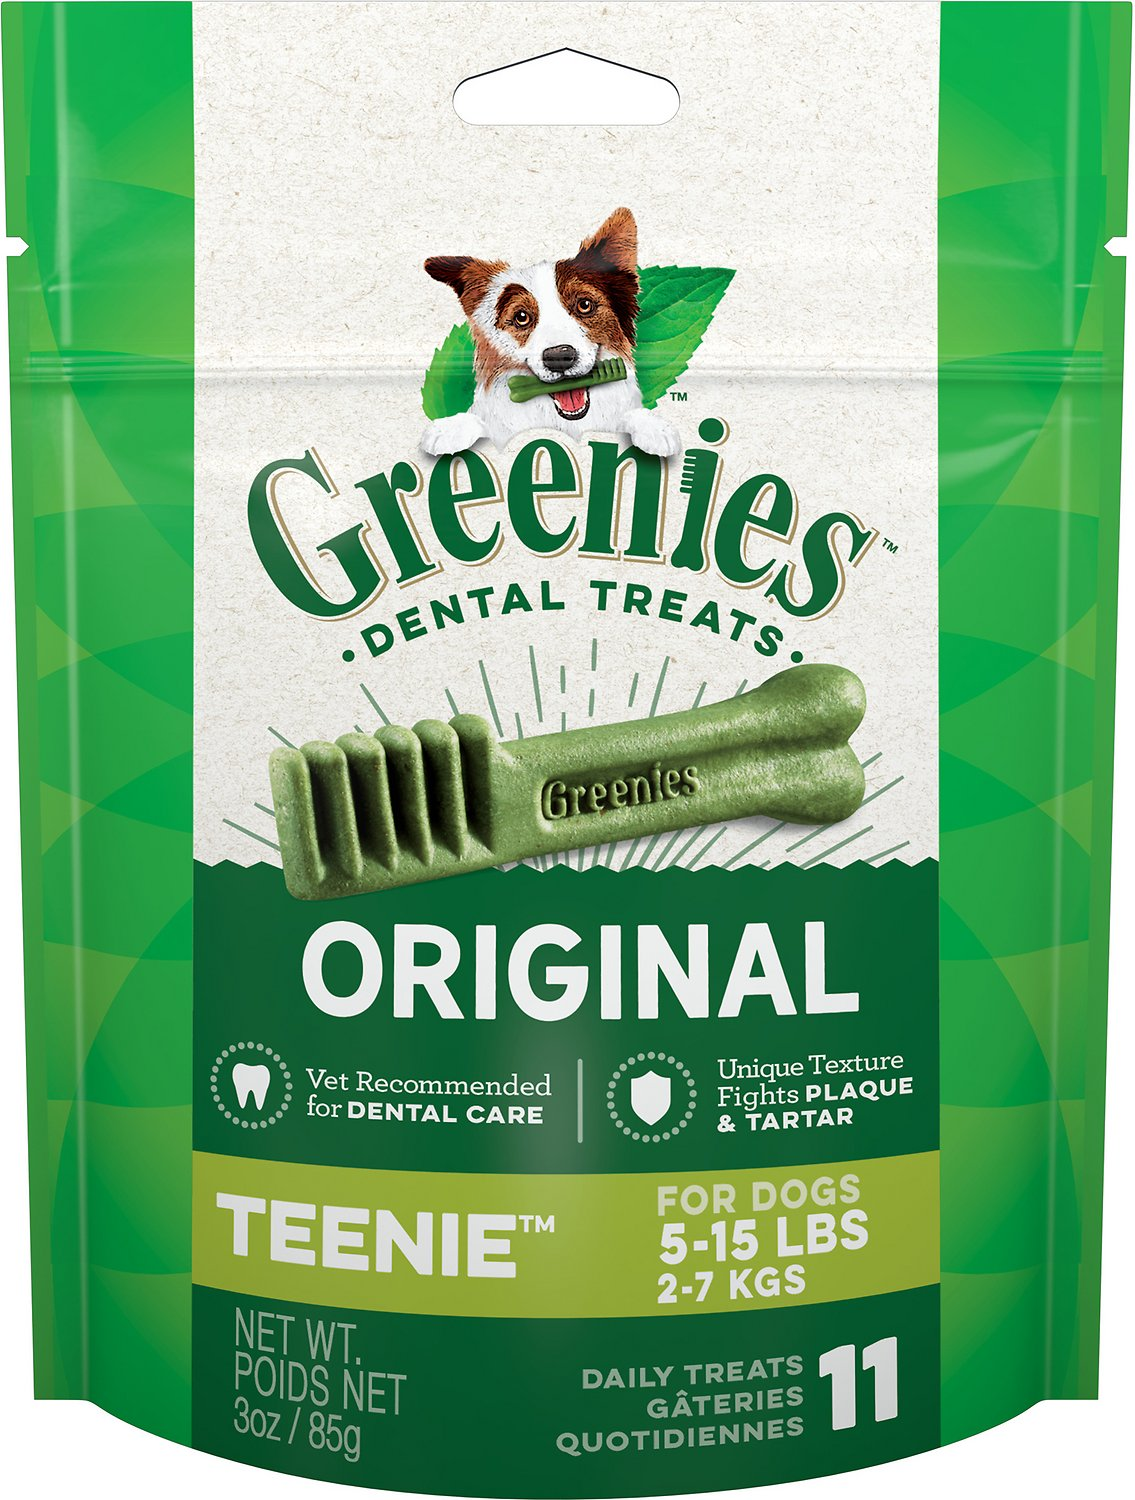 Greenies Original Teenie Dental Dog Treats, 11-count